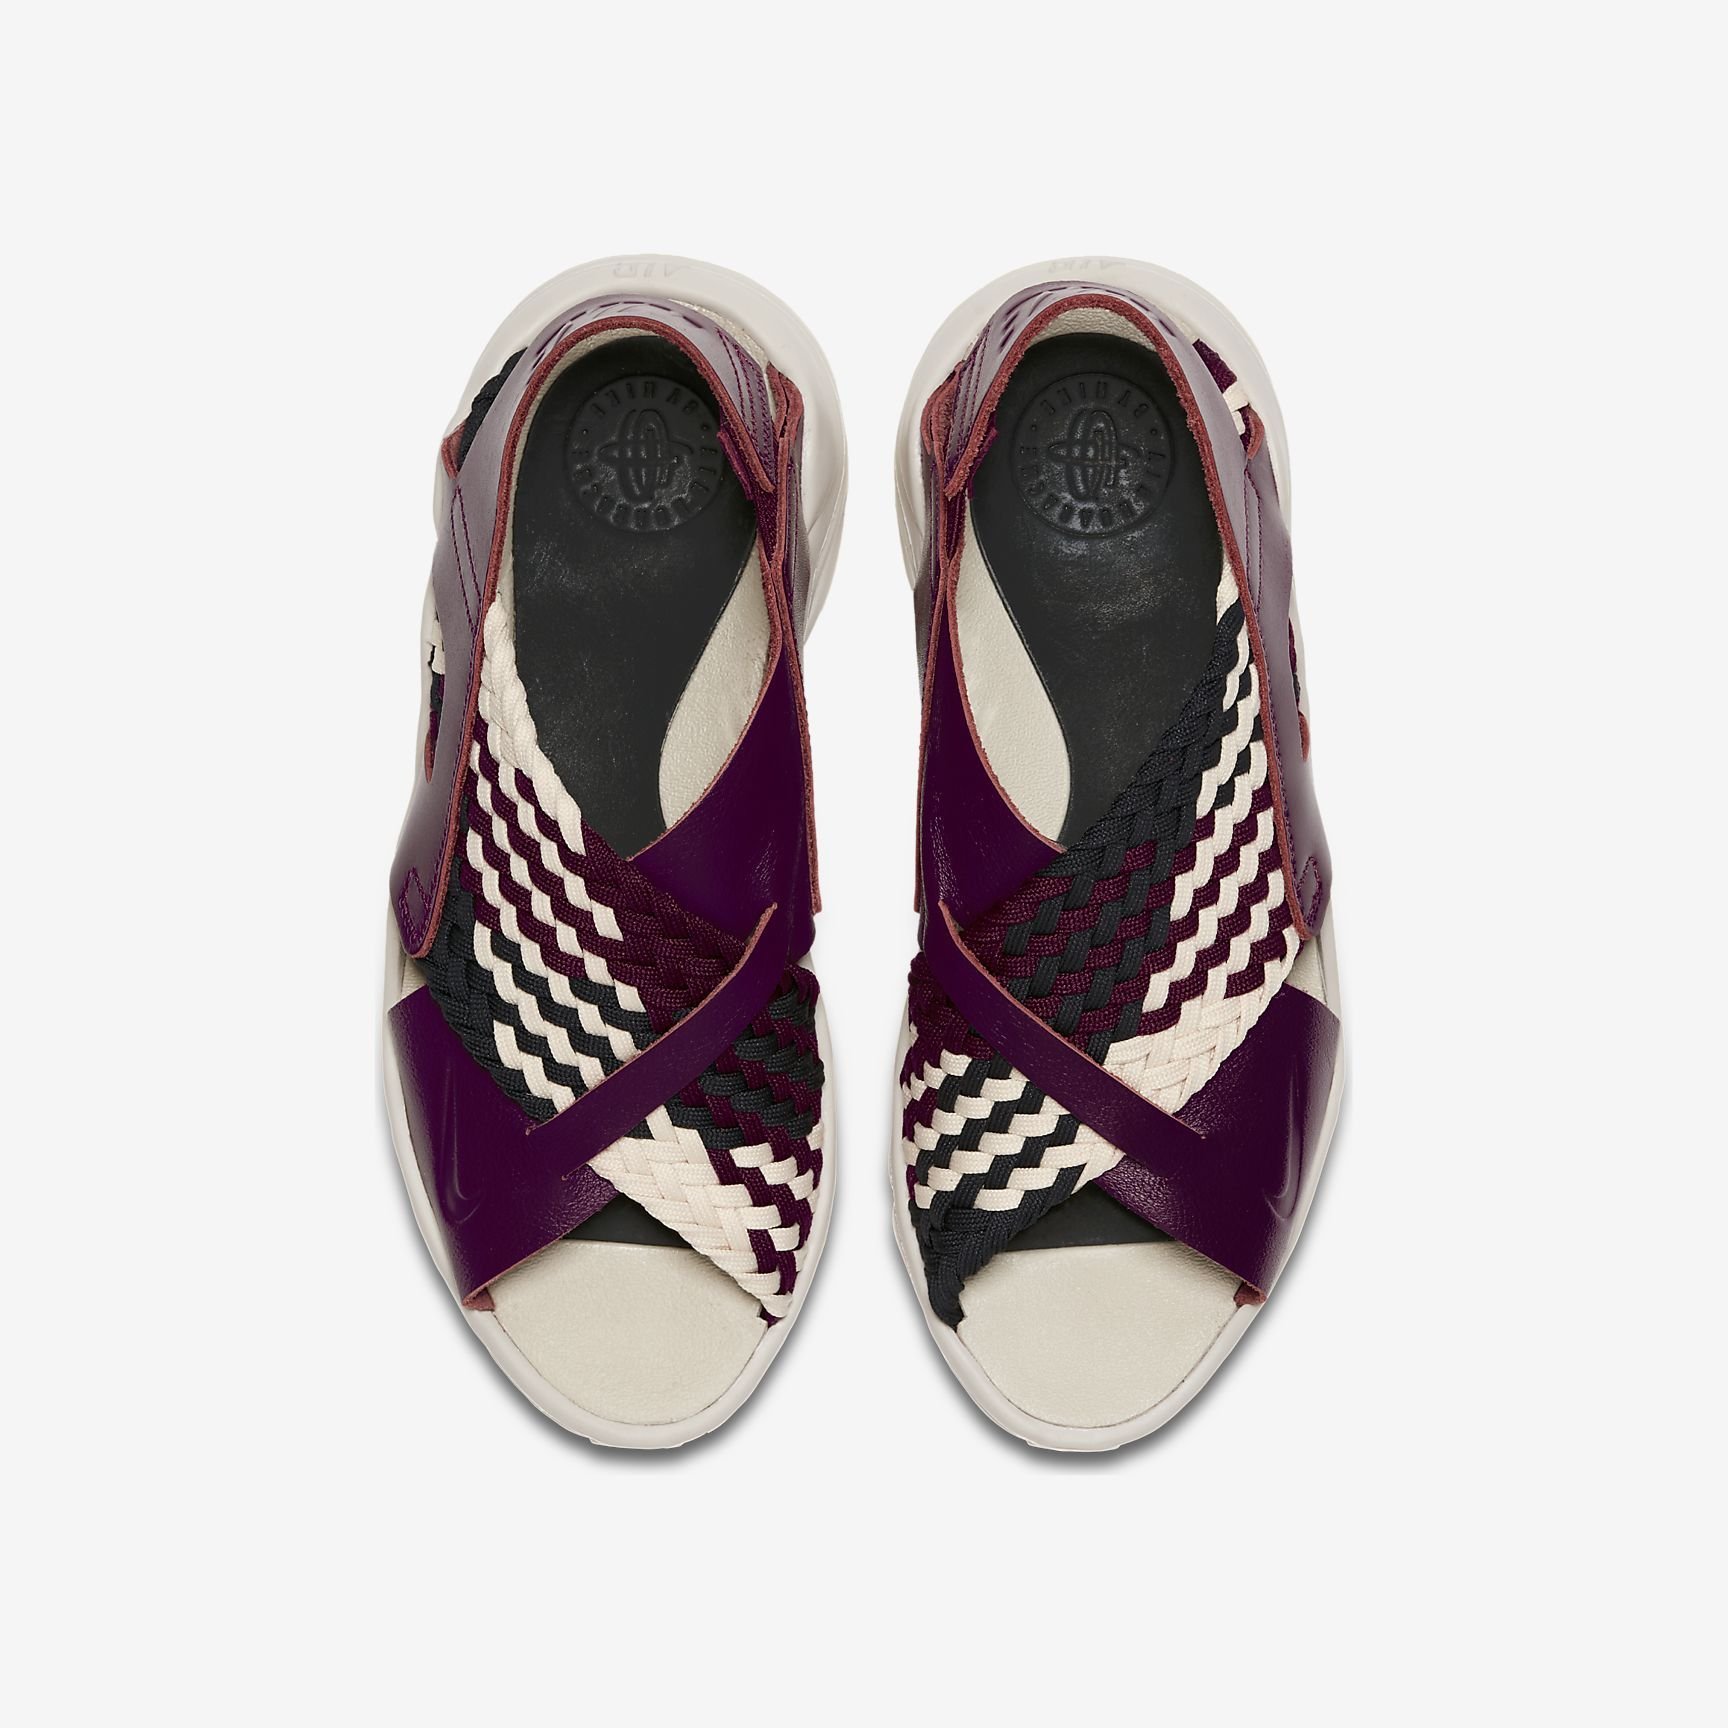 low priced 6a342 6f7b9 The Nike Air Huarache Ultra Women s Sandal helps keep your feet cool and  comfortable on warmer days. • Shown  Bordeaux Desert Sand Dark Smoke Guava  Ice ...